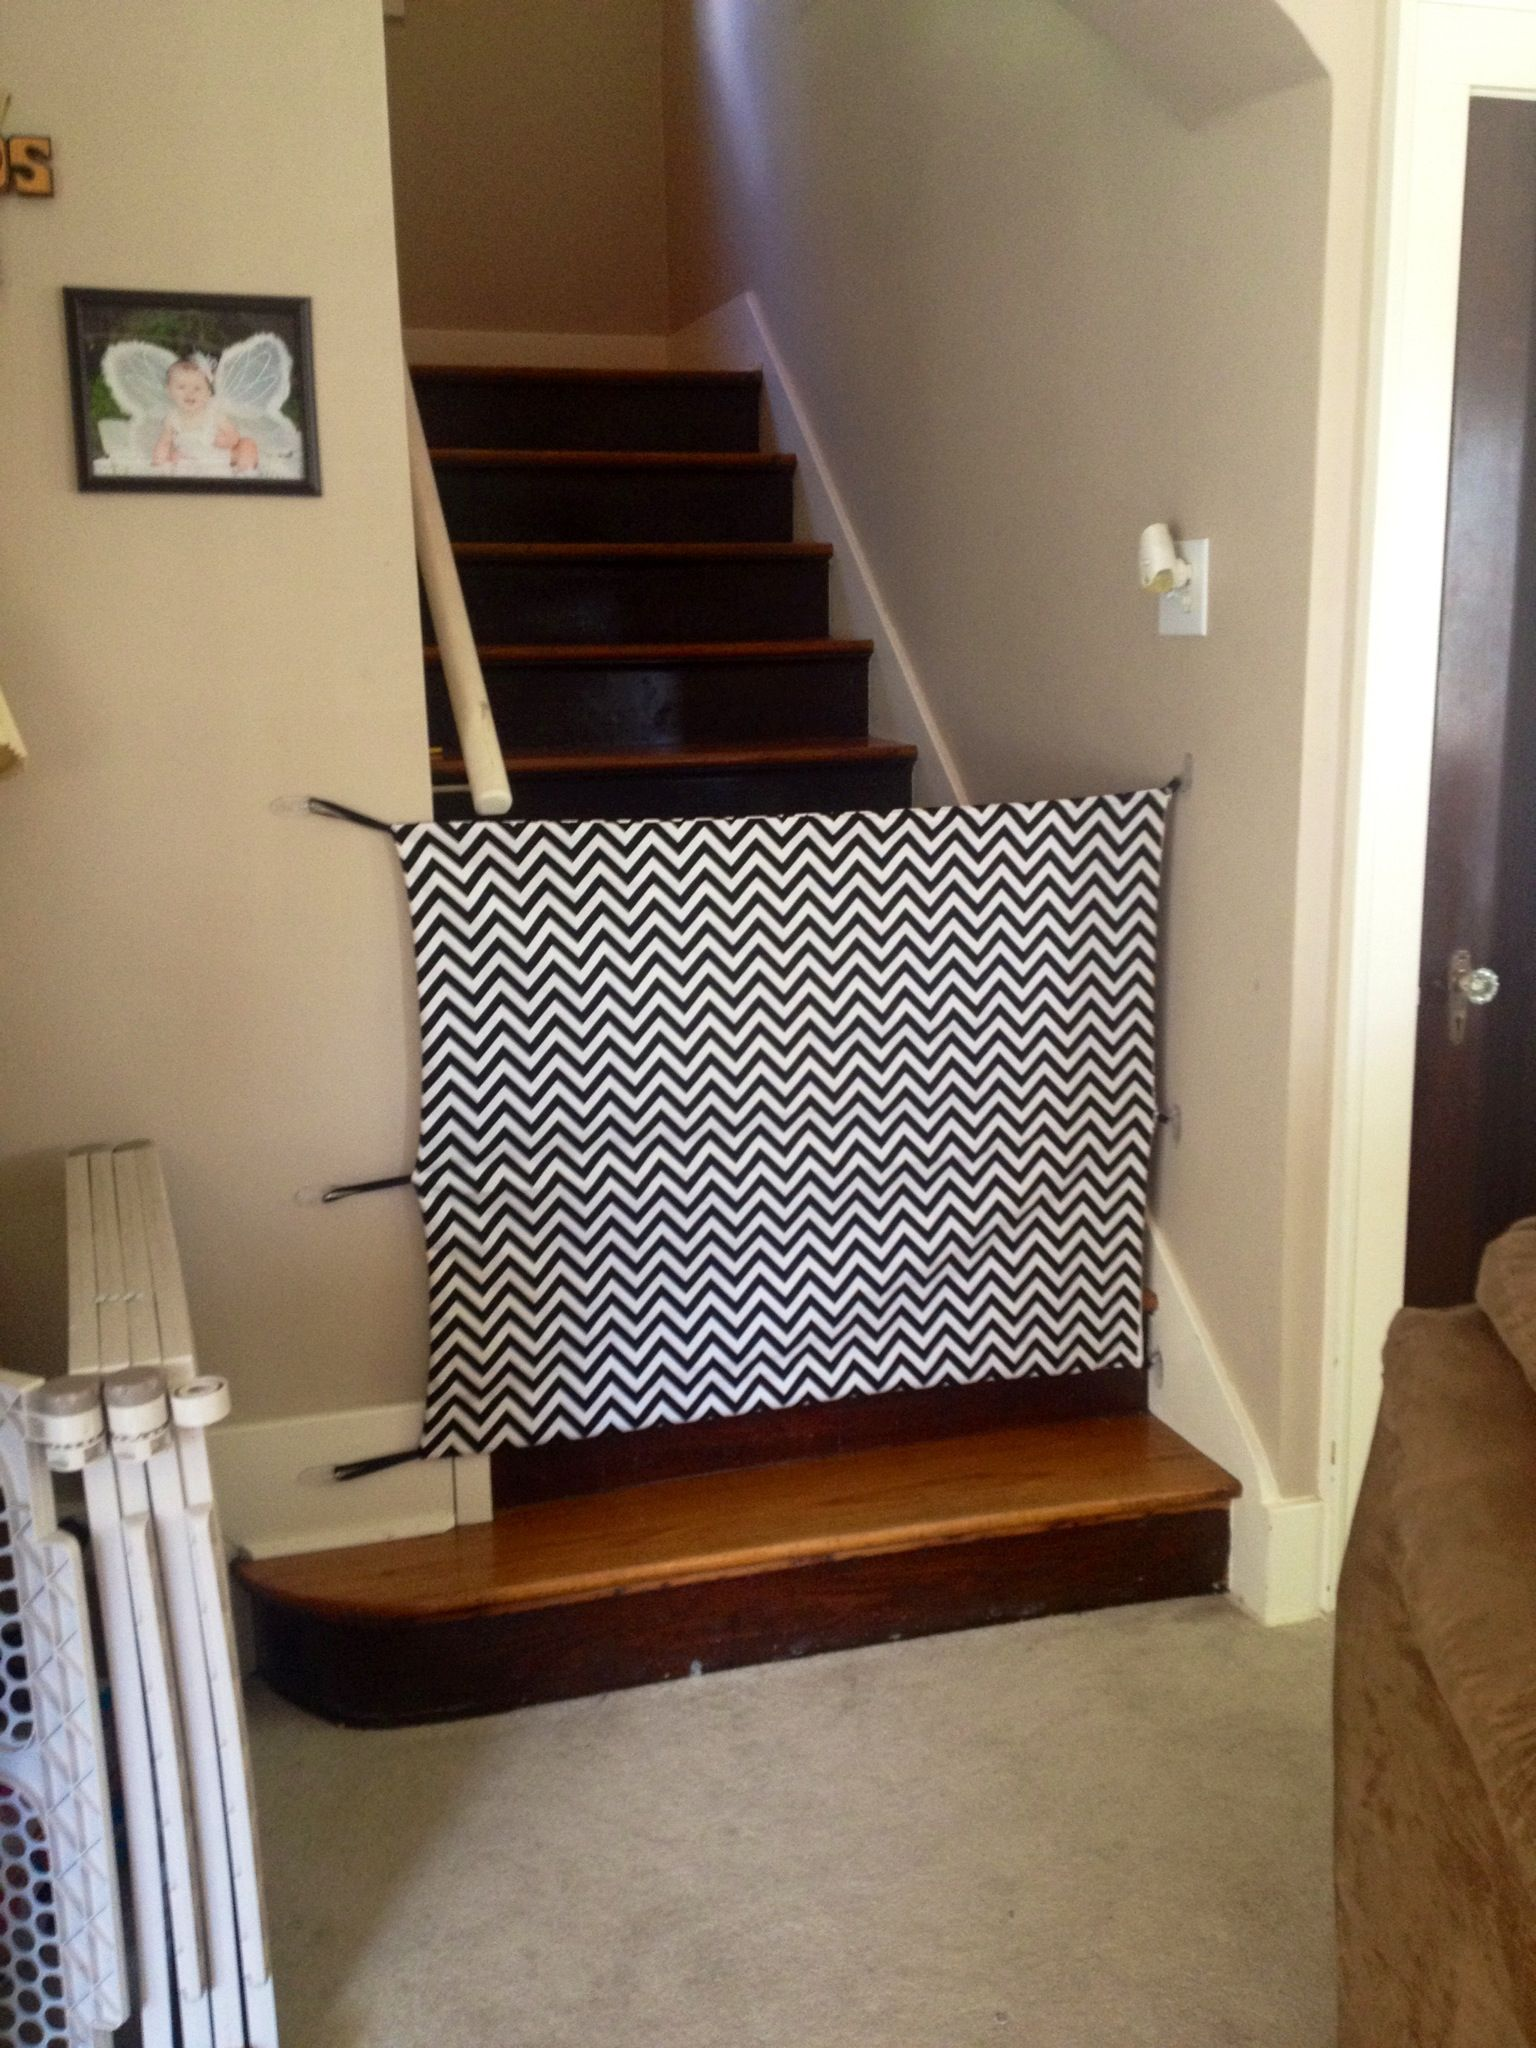 Diy Fabric Baby Gate Cost Around 30 Total And It Looks